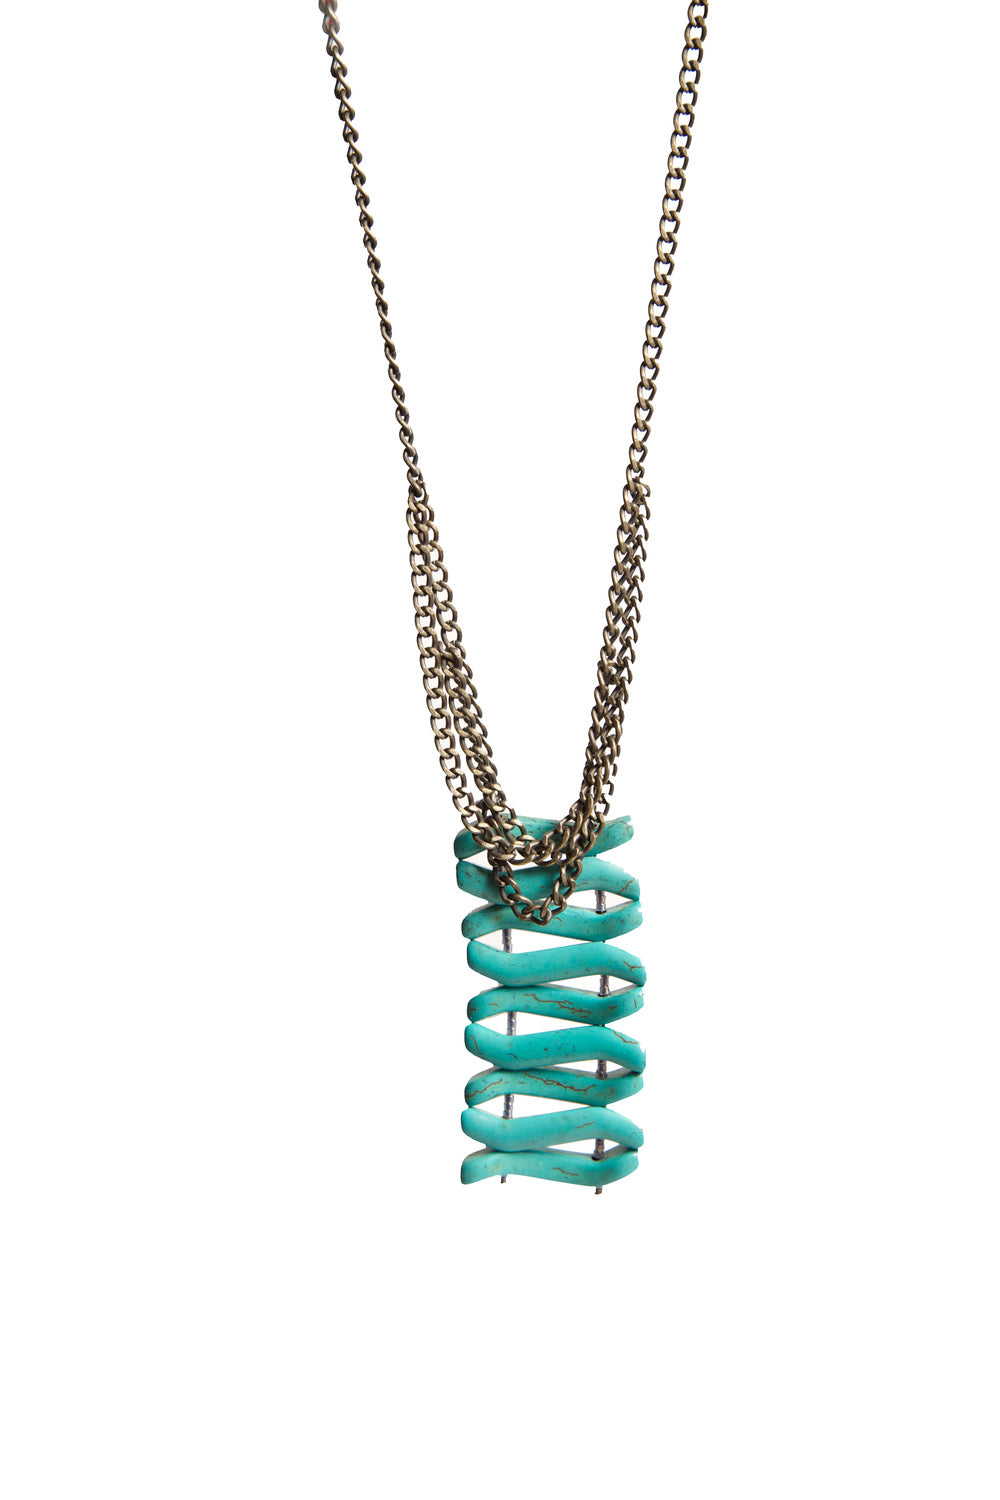 Turquoise necklace with silver chain.